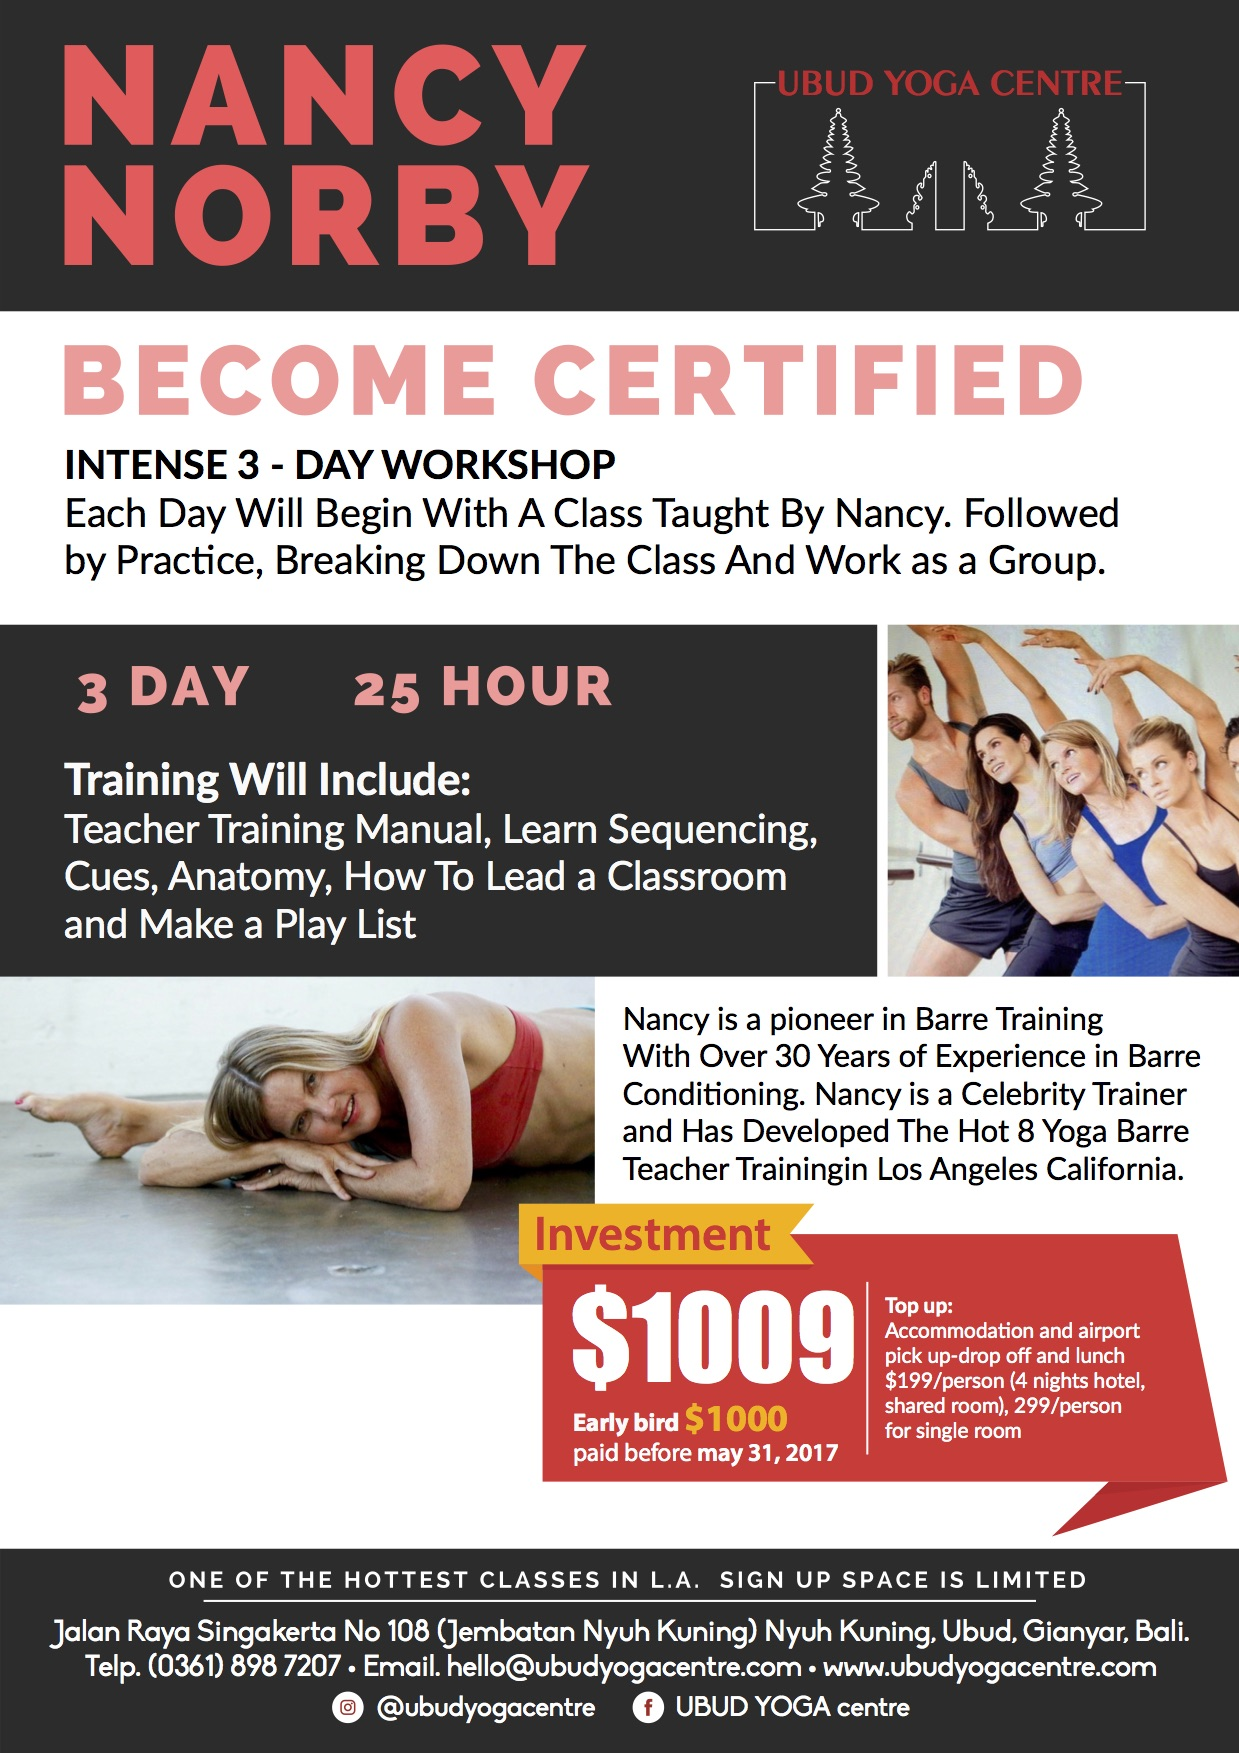 Hot yoga barre teacher training with nancy norby ubud yoga centre nancy is a pioneer in barre training has over 30 years of experience in barre conditioning she has been a studio owner lotte berk method and sunset plaza xflitez Gallery